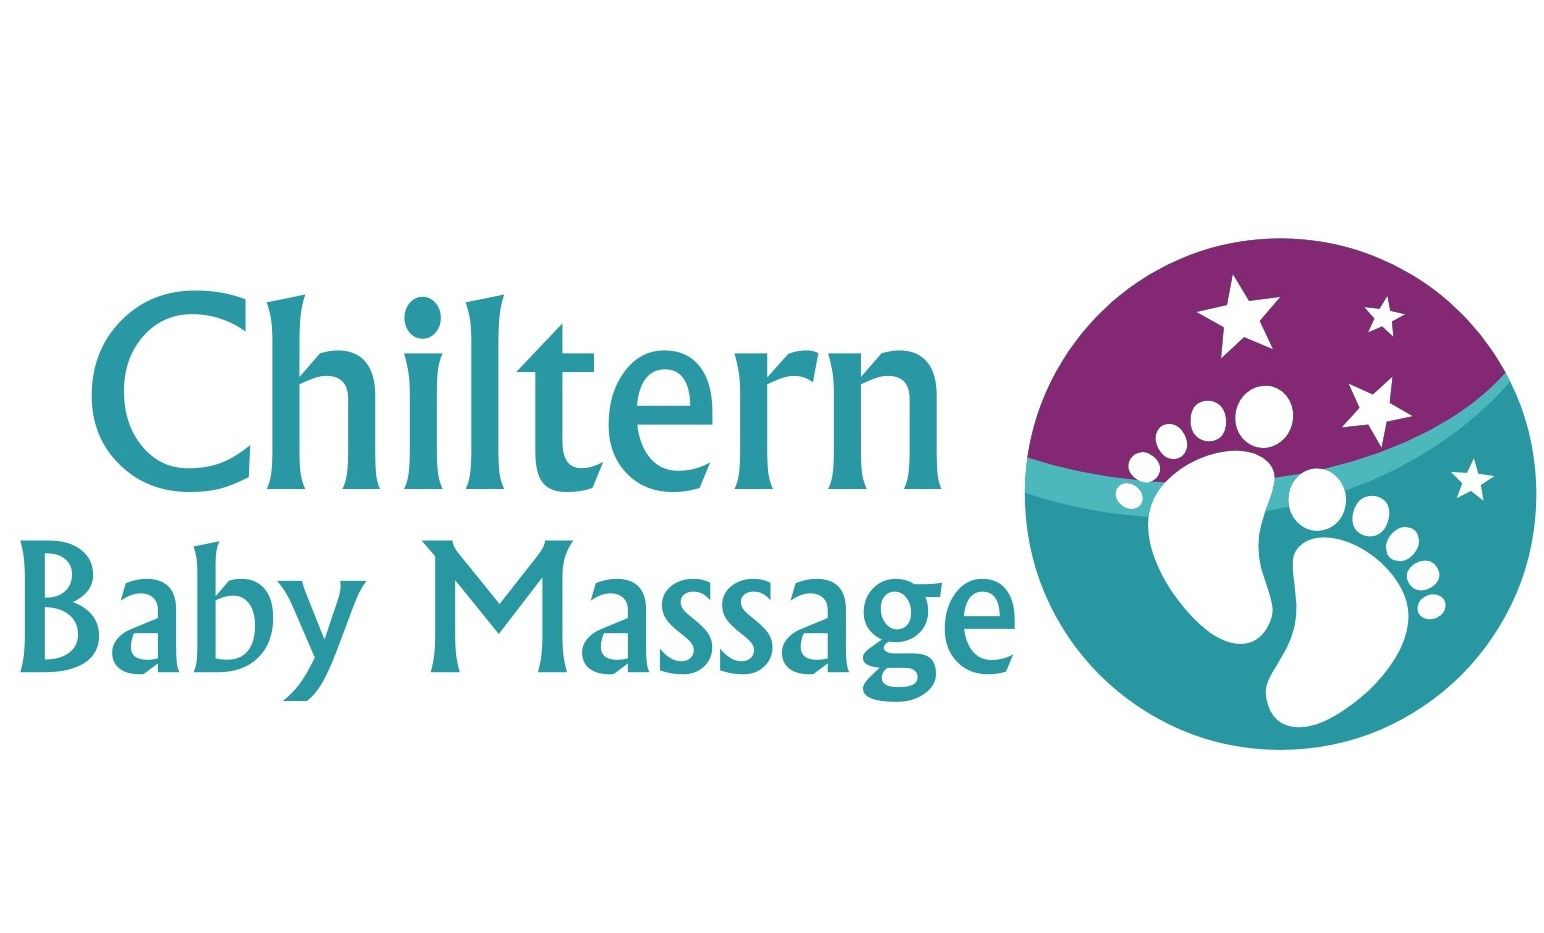 Chiltern Baby Massage's logo